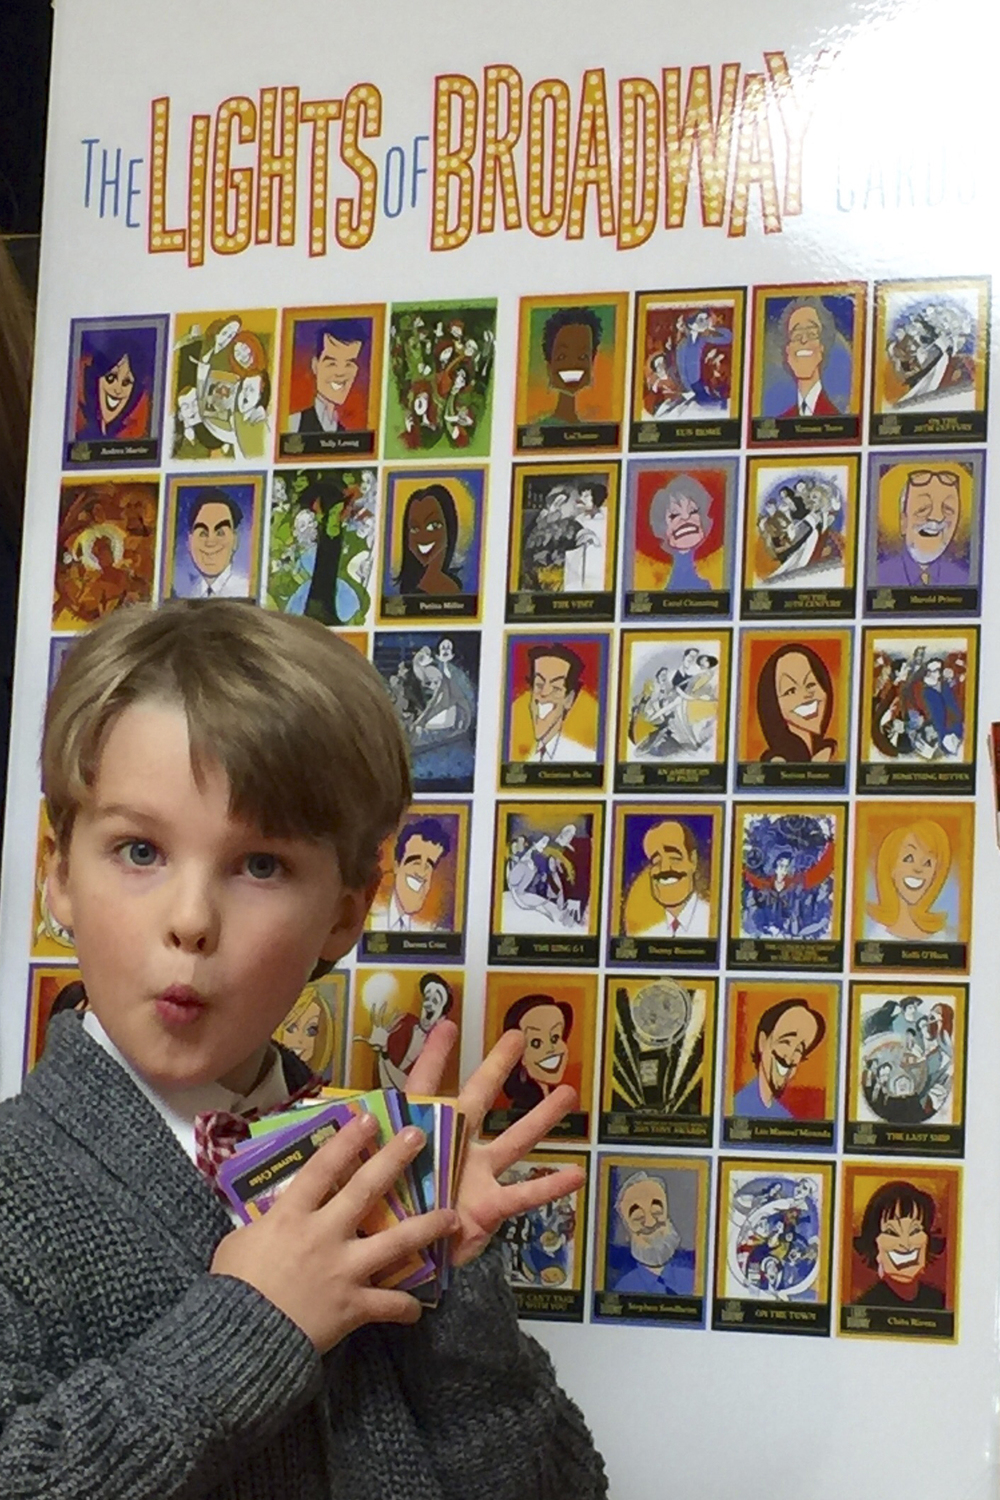 Iain Loves Theatre and The Lights of Broadway Show Cards™. Photo credit: Dori Berinstein.